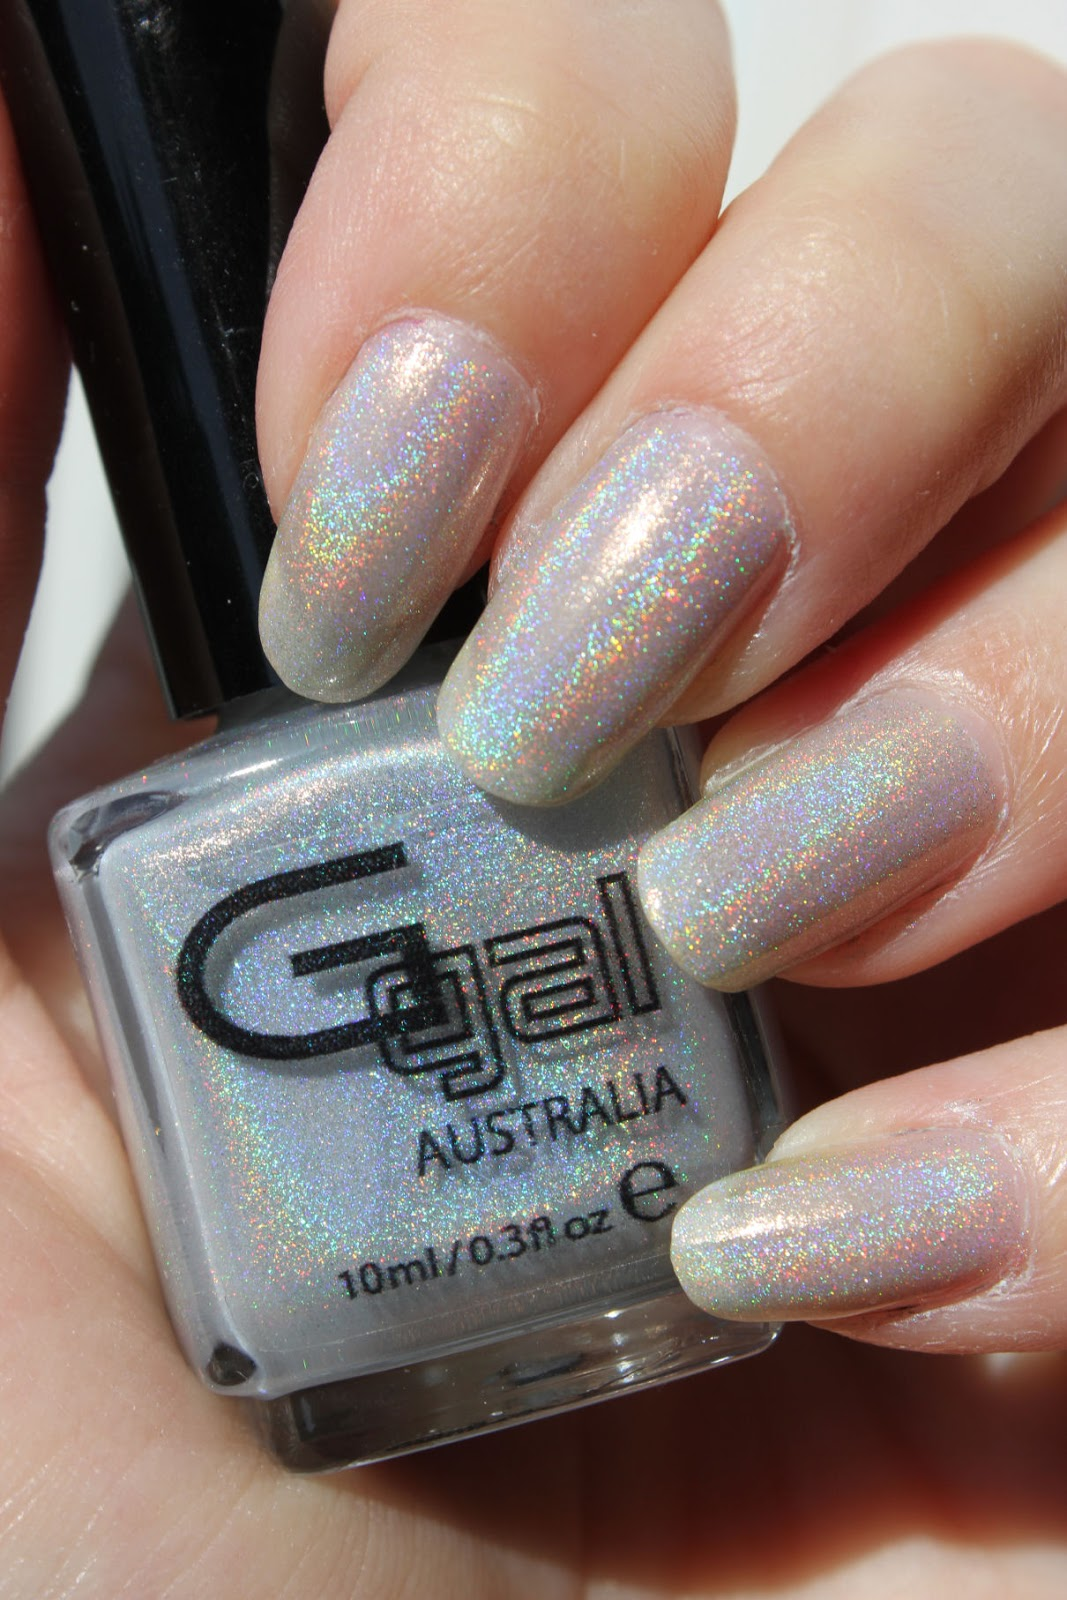 http://lacquediction.blogspot.de/2015/04/glittergal-light-as-feather-dupetest.html